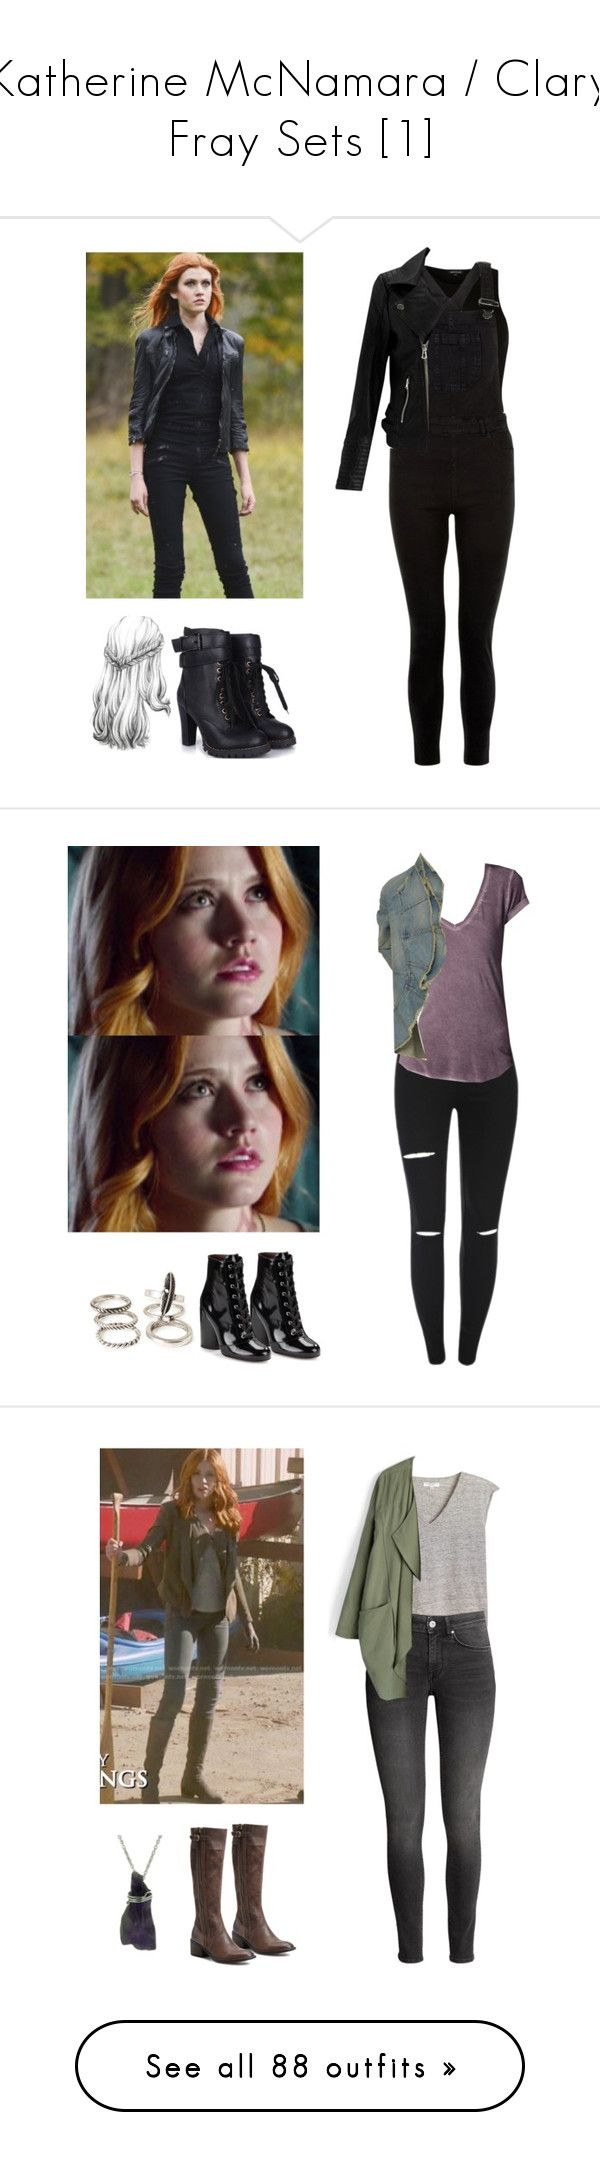 """""""Katherine McNamara / Clary Fray Sets [1]"""" by demiwitch-of-mischief ❤ liked on Polyvore featuring River Island, New Look, Miss Selfridge, Forever 21, Marc Jacobs, Børn, Chicwish, Doublju, Topshop and GG 750"""